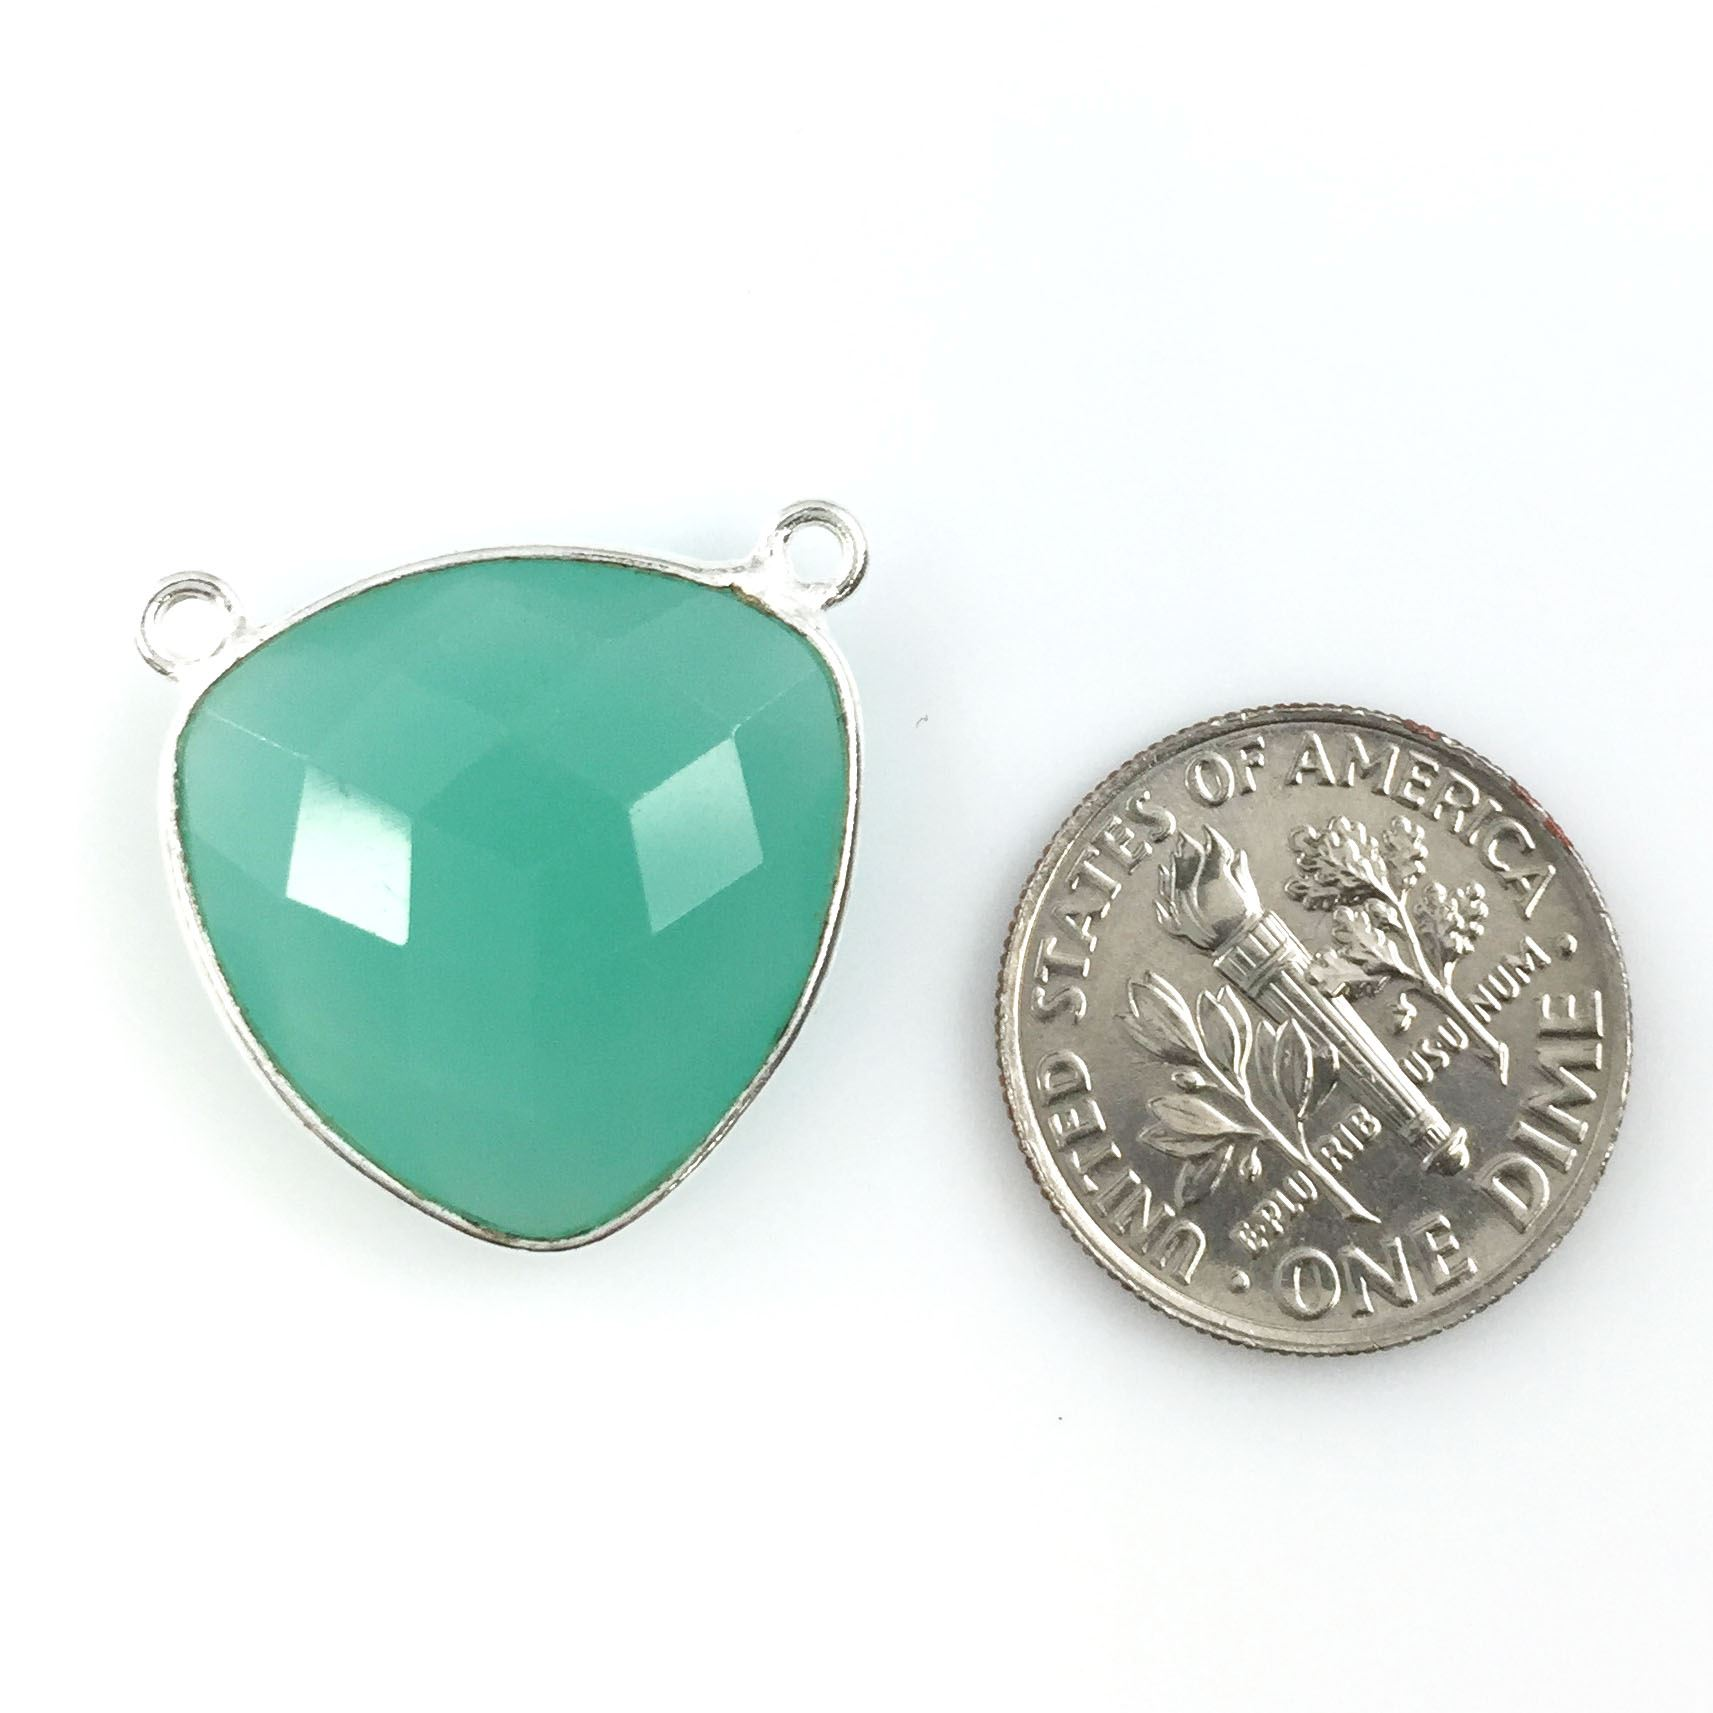 Bezel Gemstone Connector Pendant - Peru Chalcedony - Sterling Silver - Large Trillion Shaped Faceted - 18 mm - 1 piece